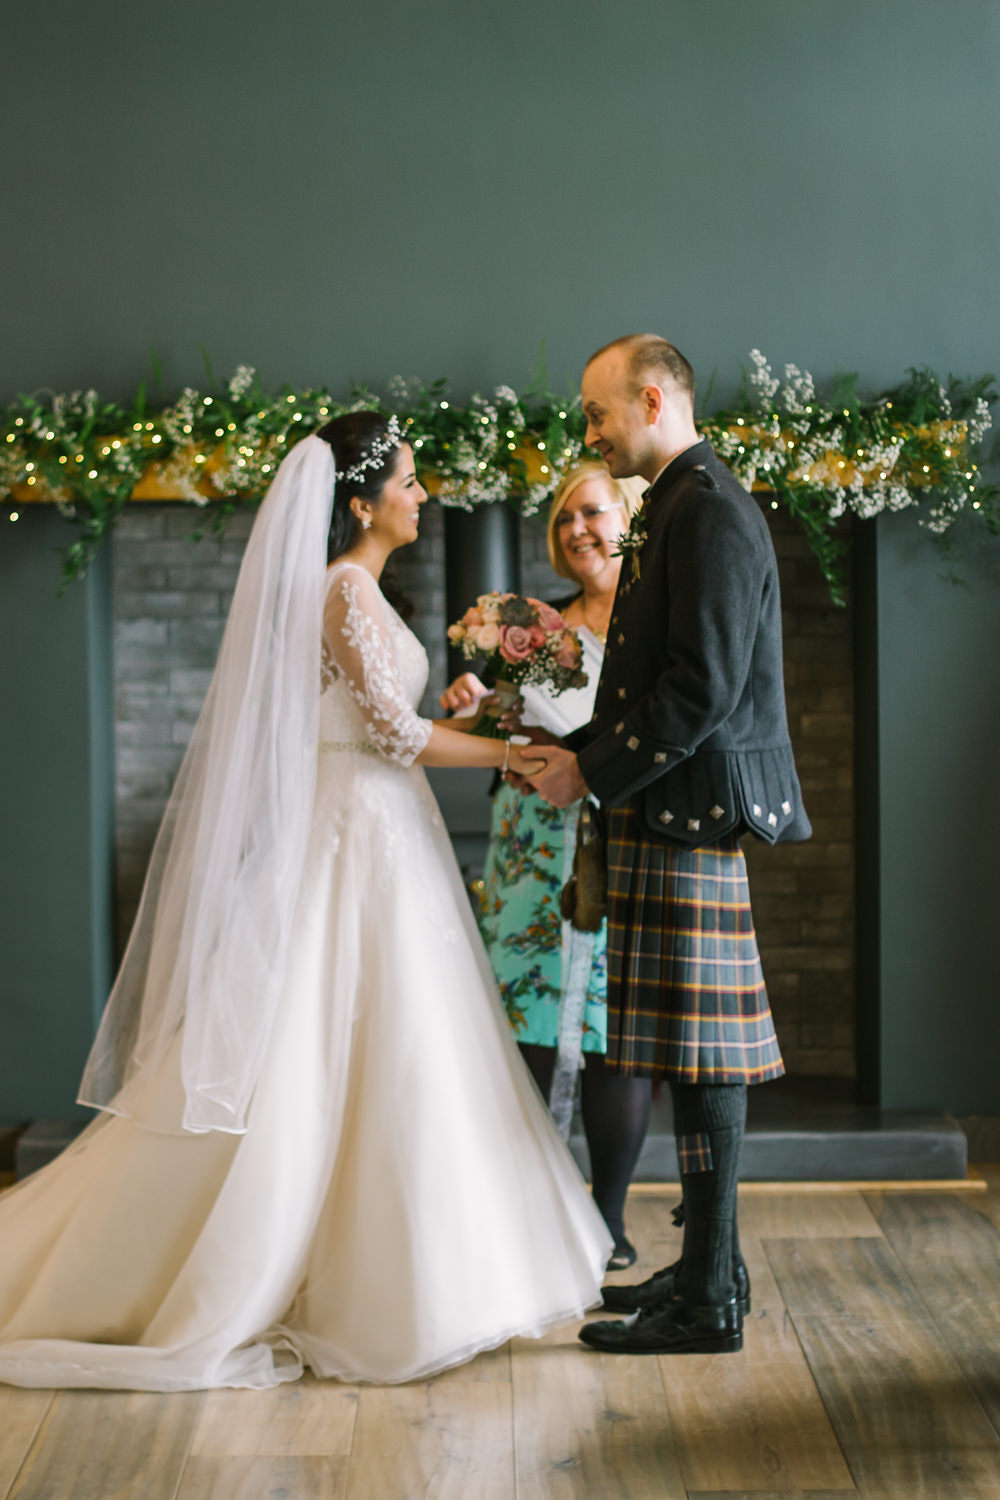 Bride Bridal V Neck Long Sleeve Embroidered Hair Vine Kilt Groom Barn At Barra Castle Wedding Ceranna Photography